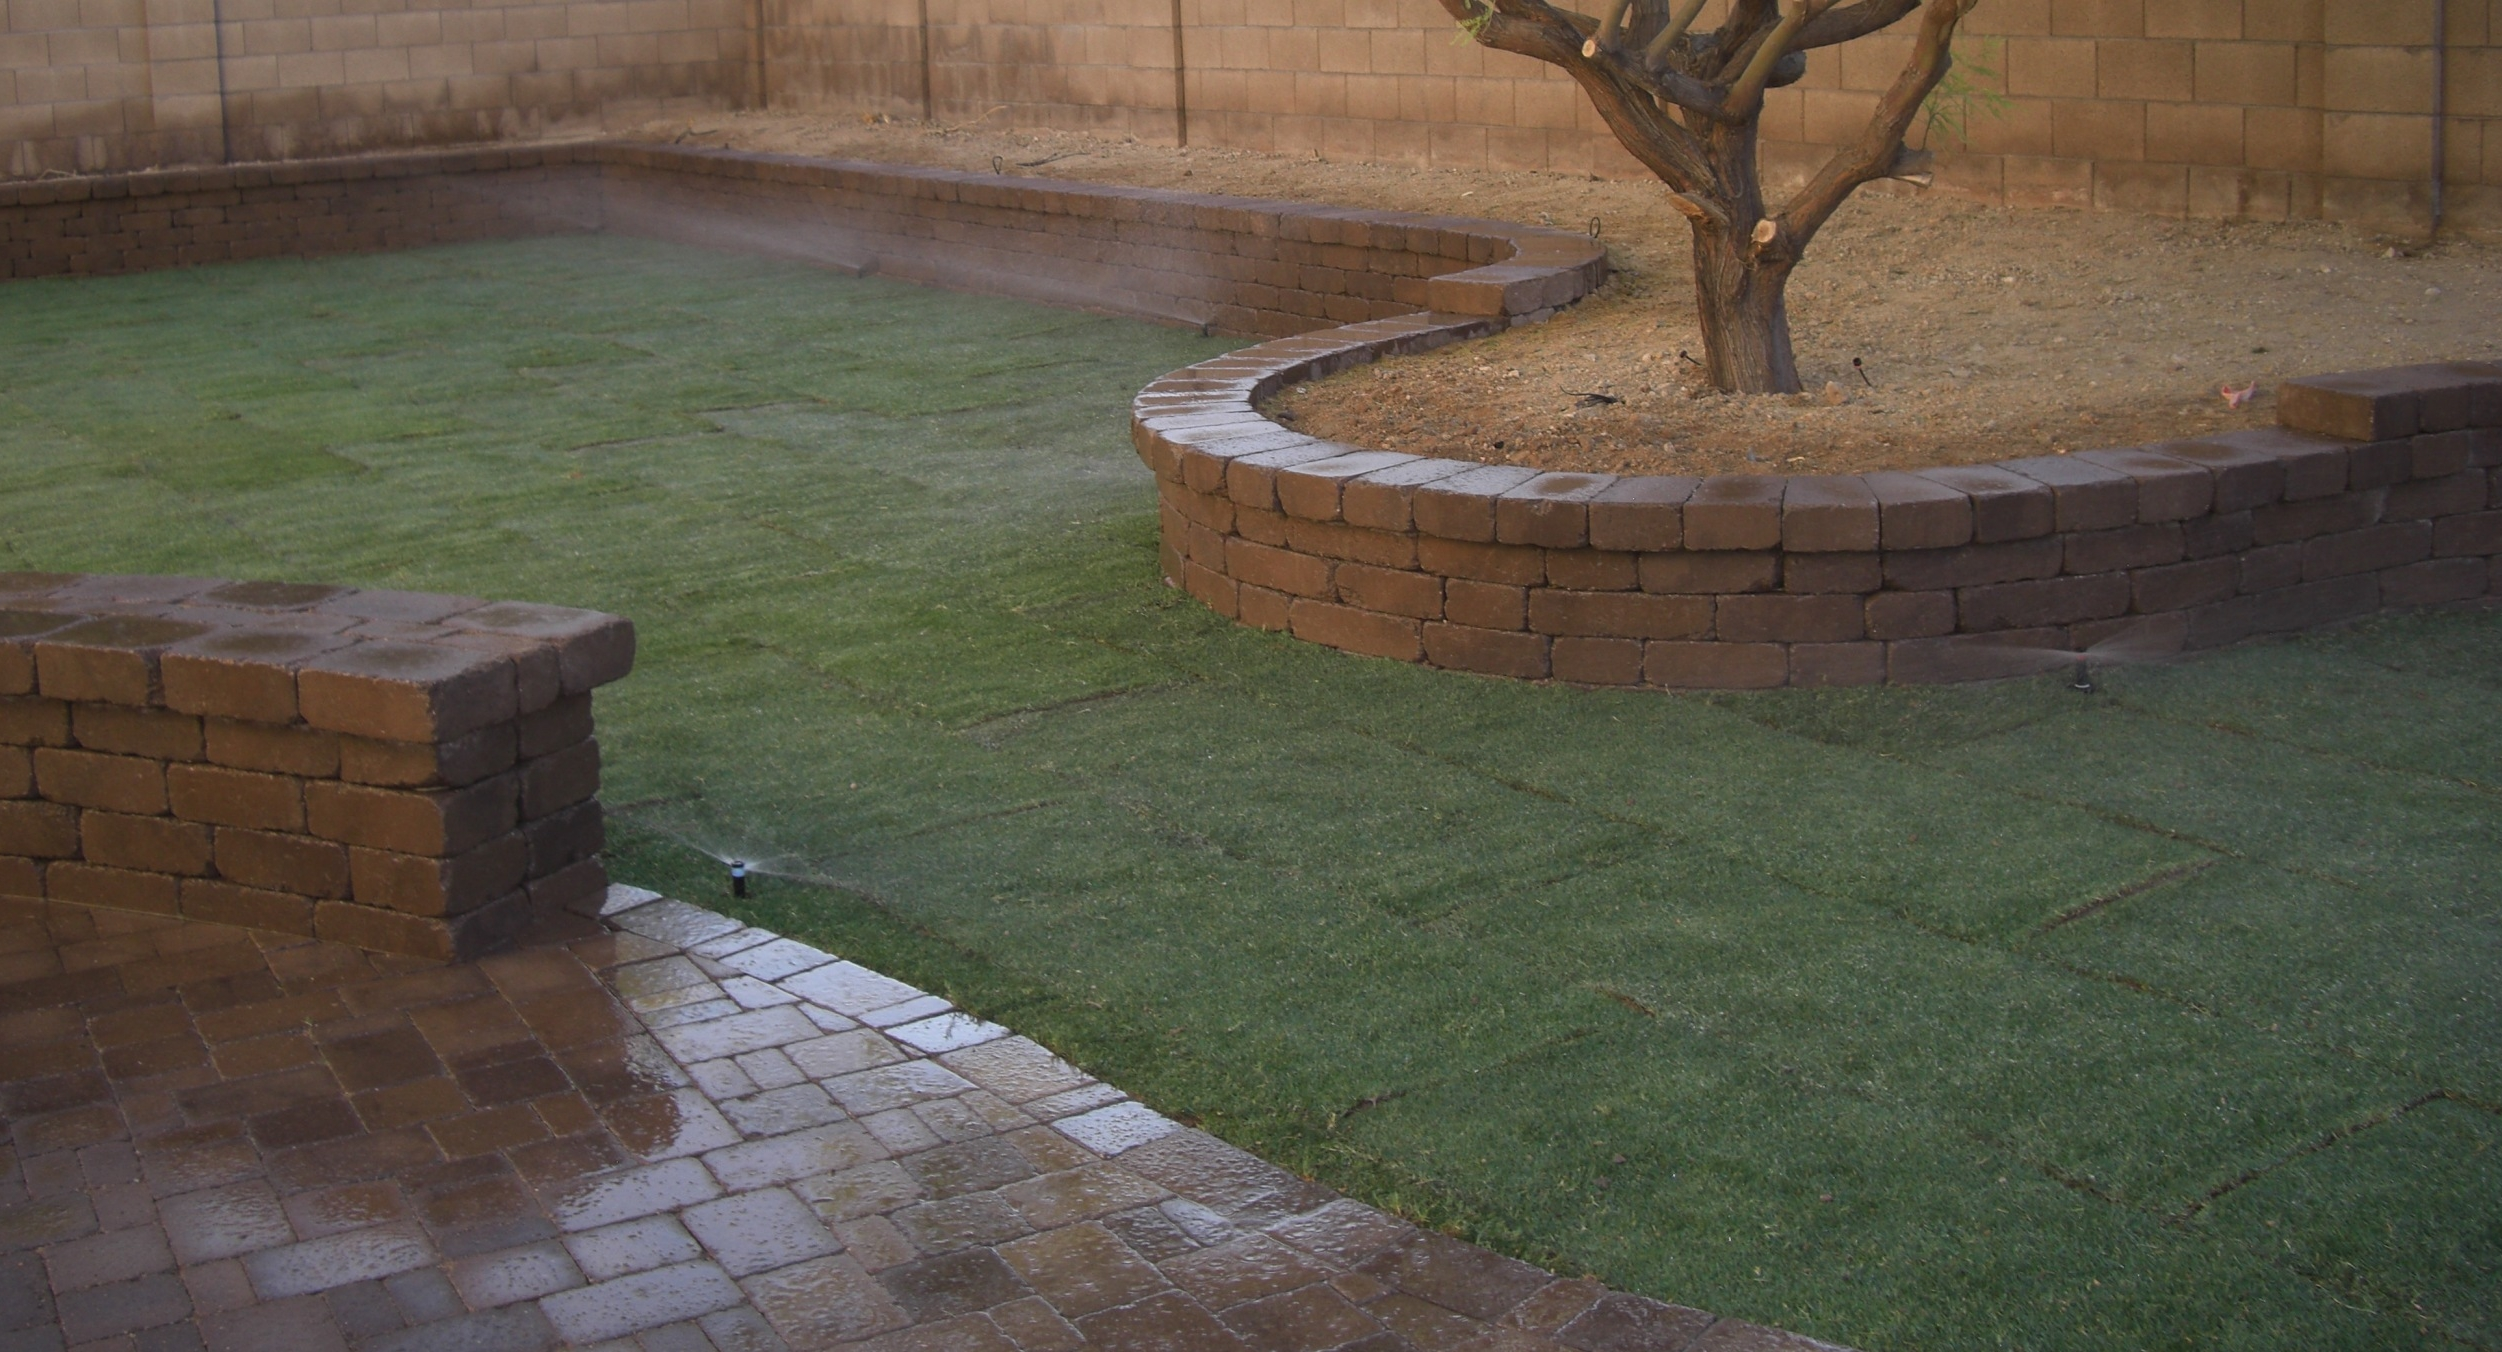 Even with low water needs desert landscaping you need Scottsdale irrigation. And if you want Arizona grass in Phoenix, sprinklers are need to keep it lush.